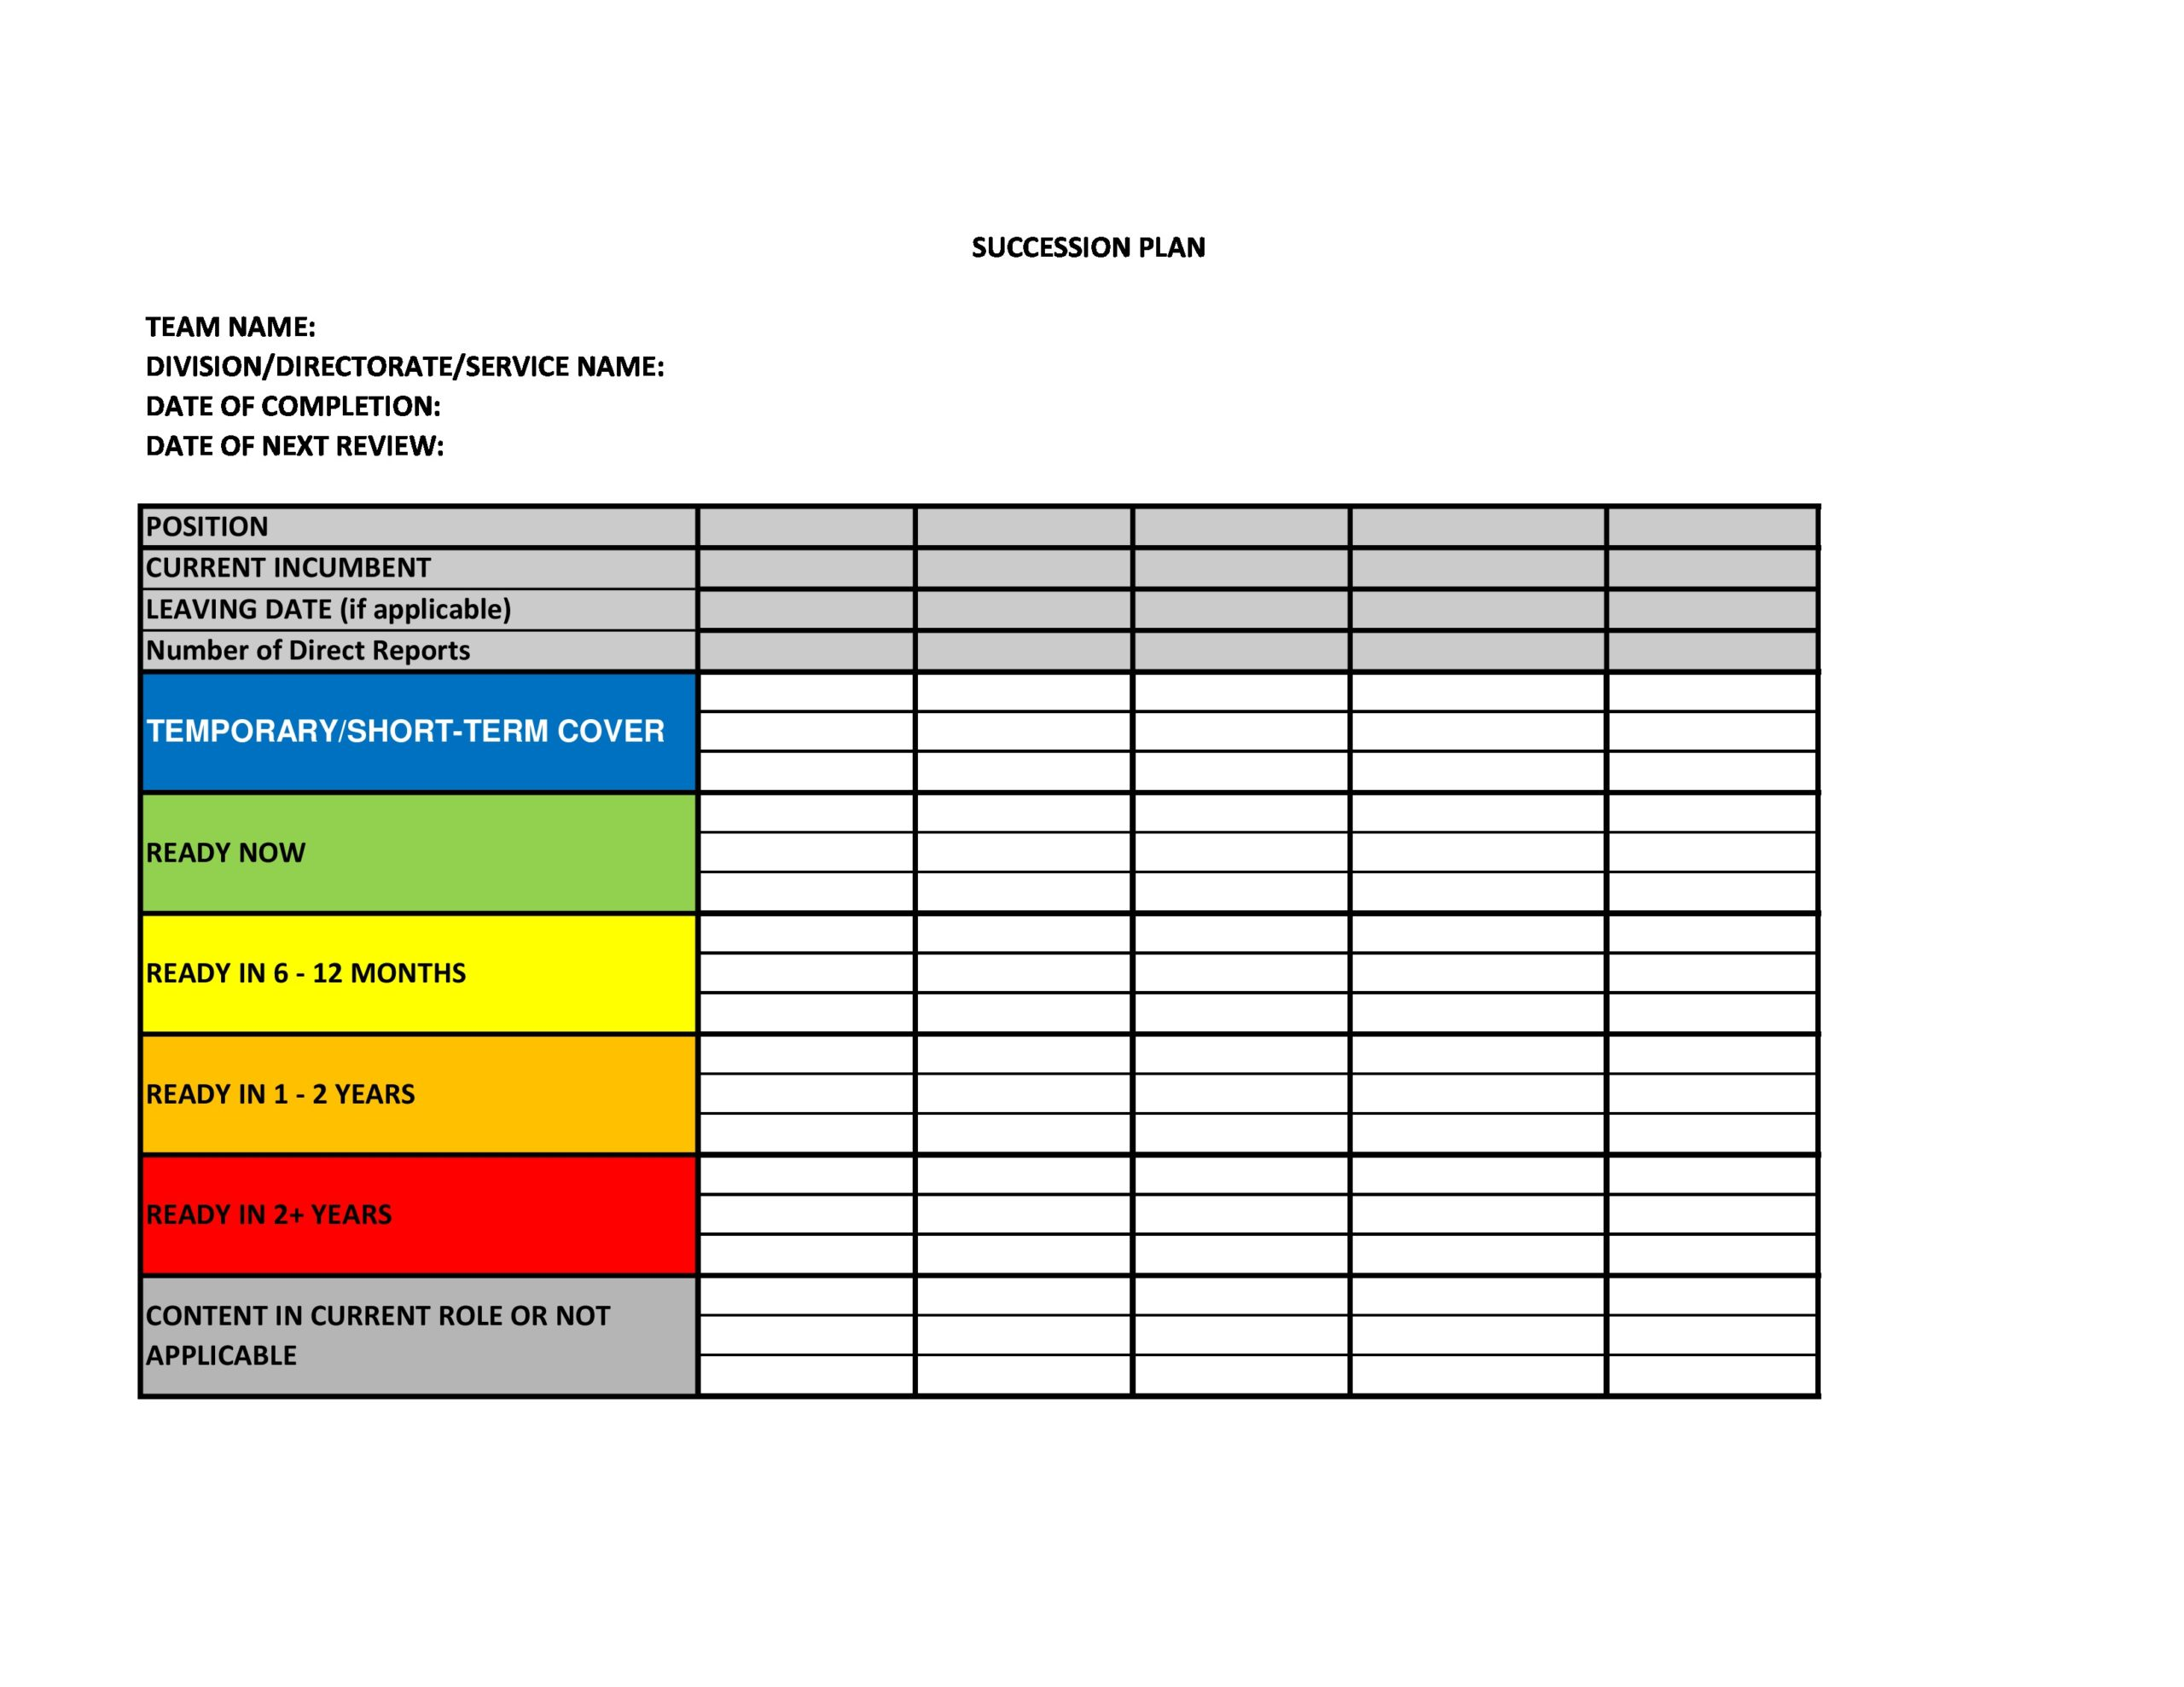 Free succession planning template 03